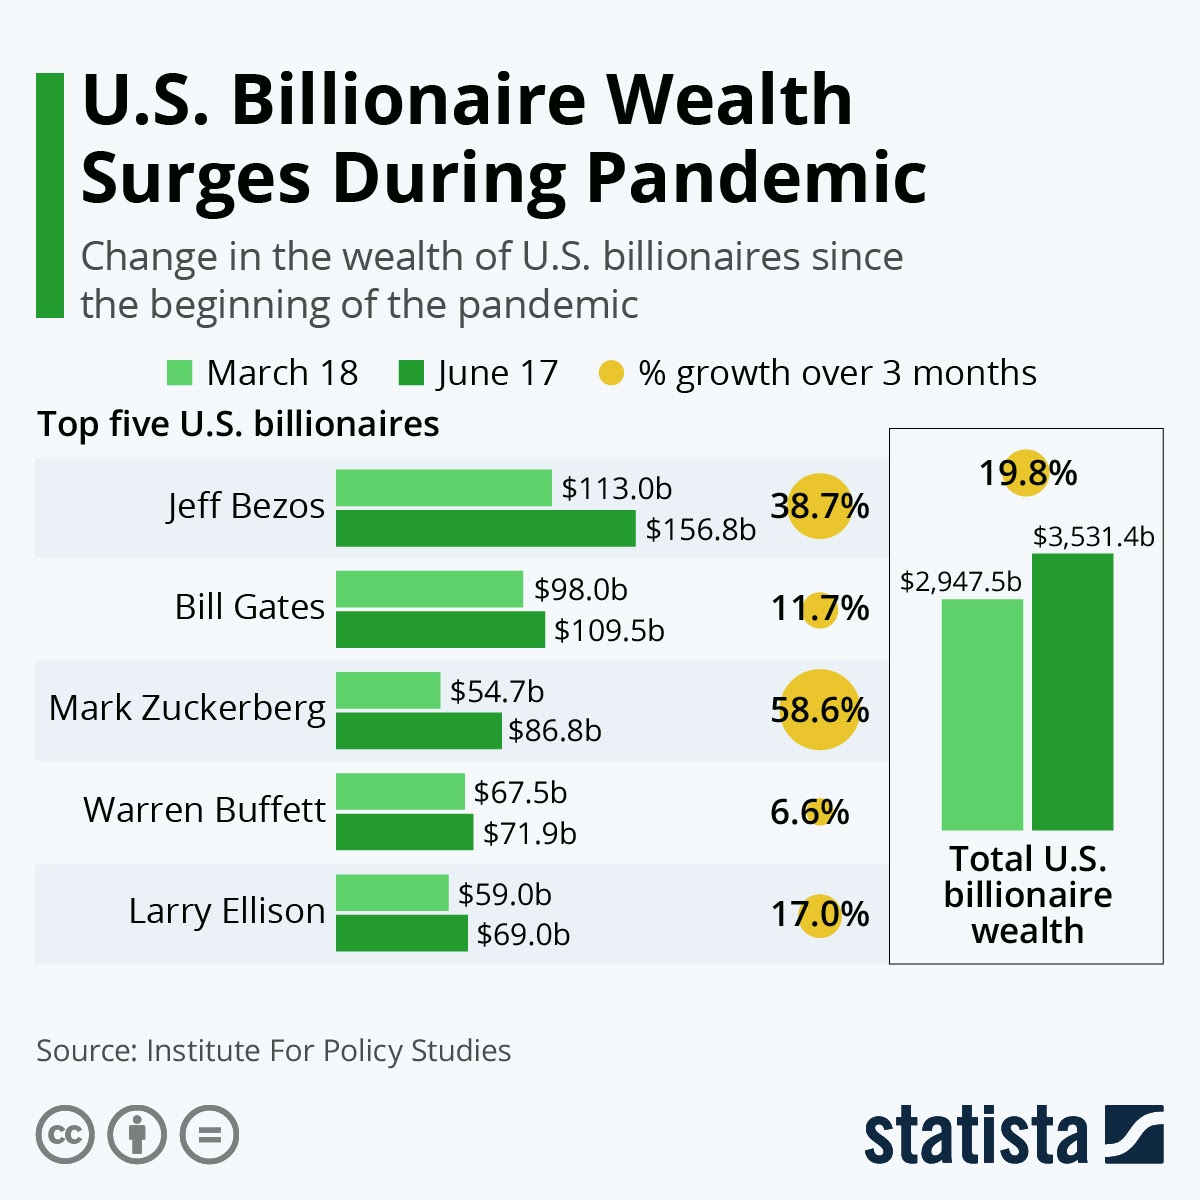 U.S. Billionaire Wealth Surged During The Pandemic #infographic